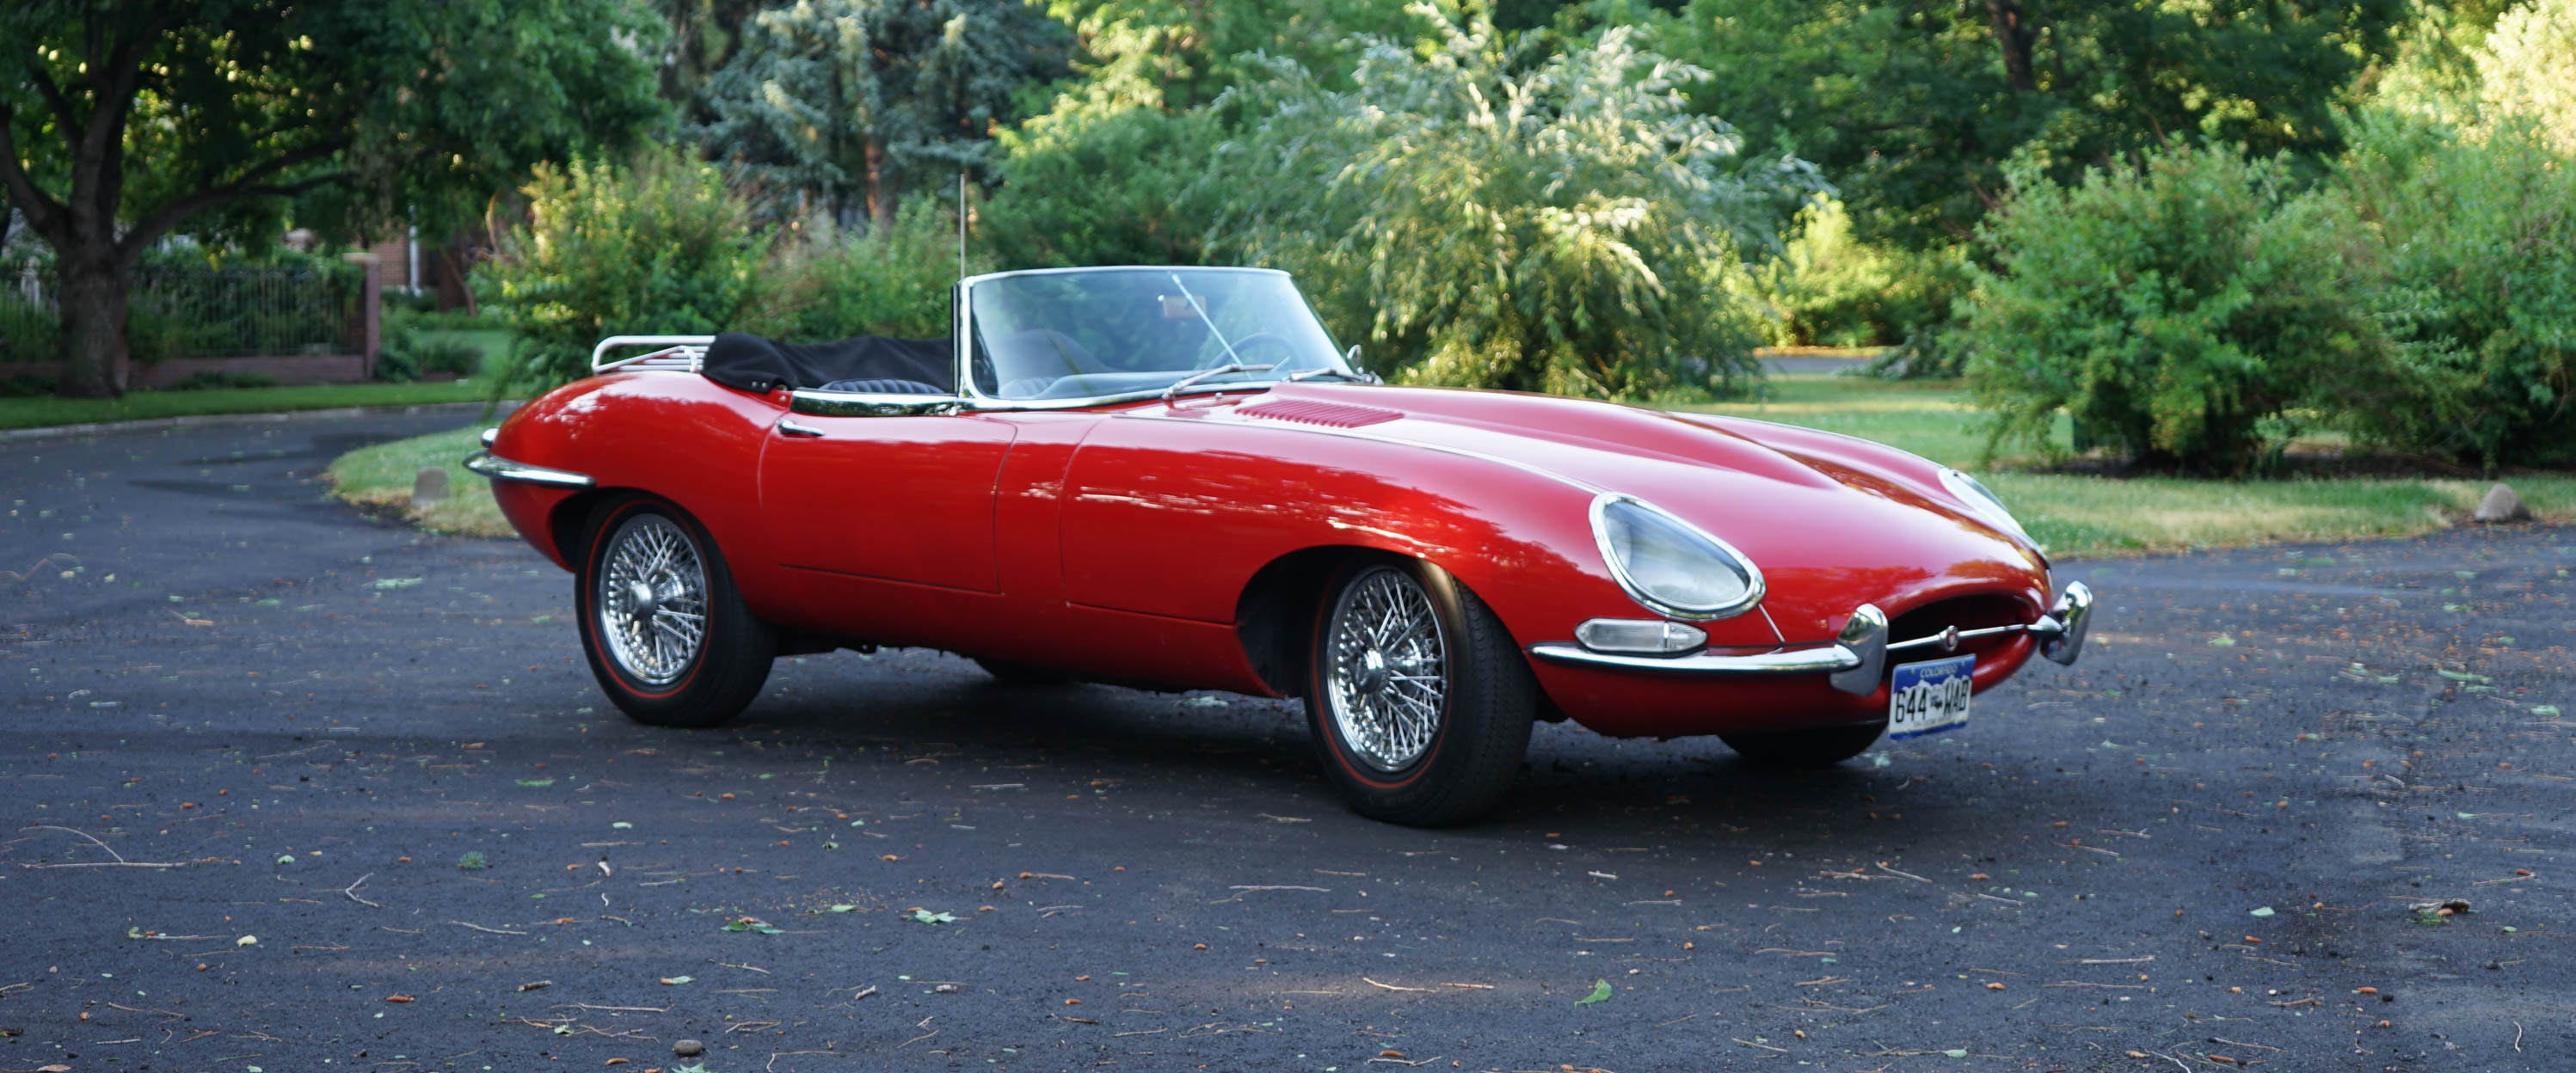 1966-Jaguar-XKE-Red-slideshow-0012x.jpg